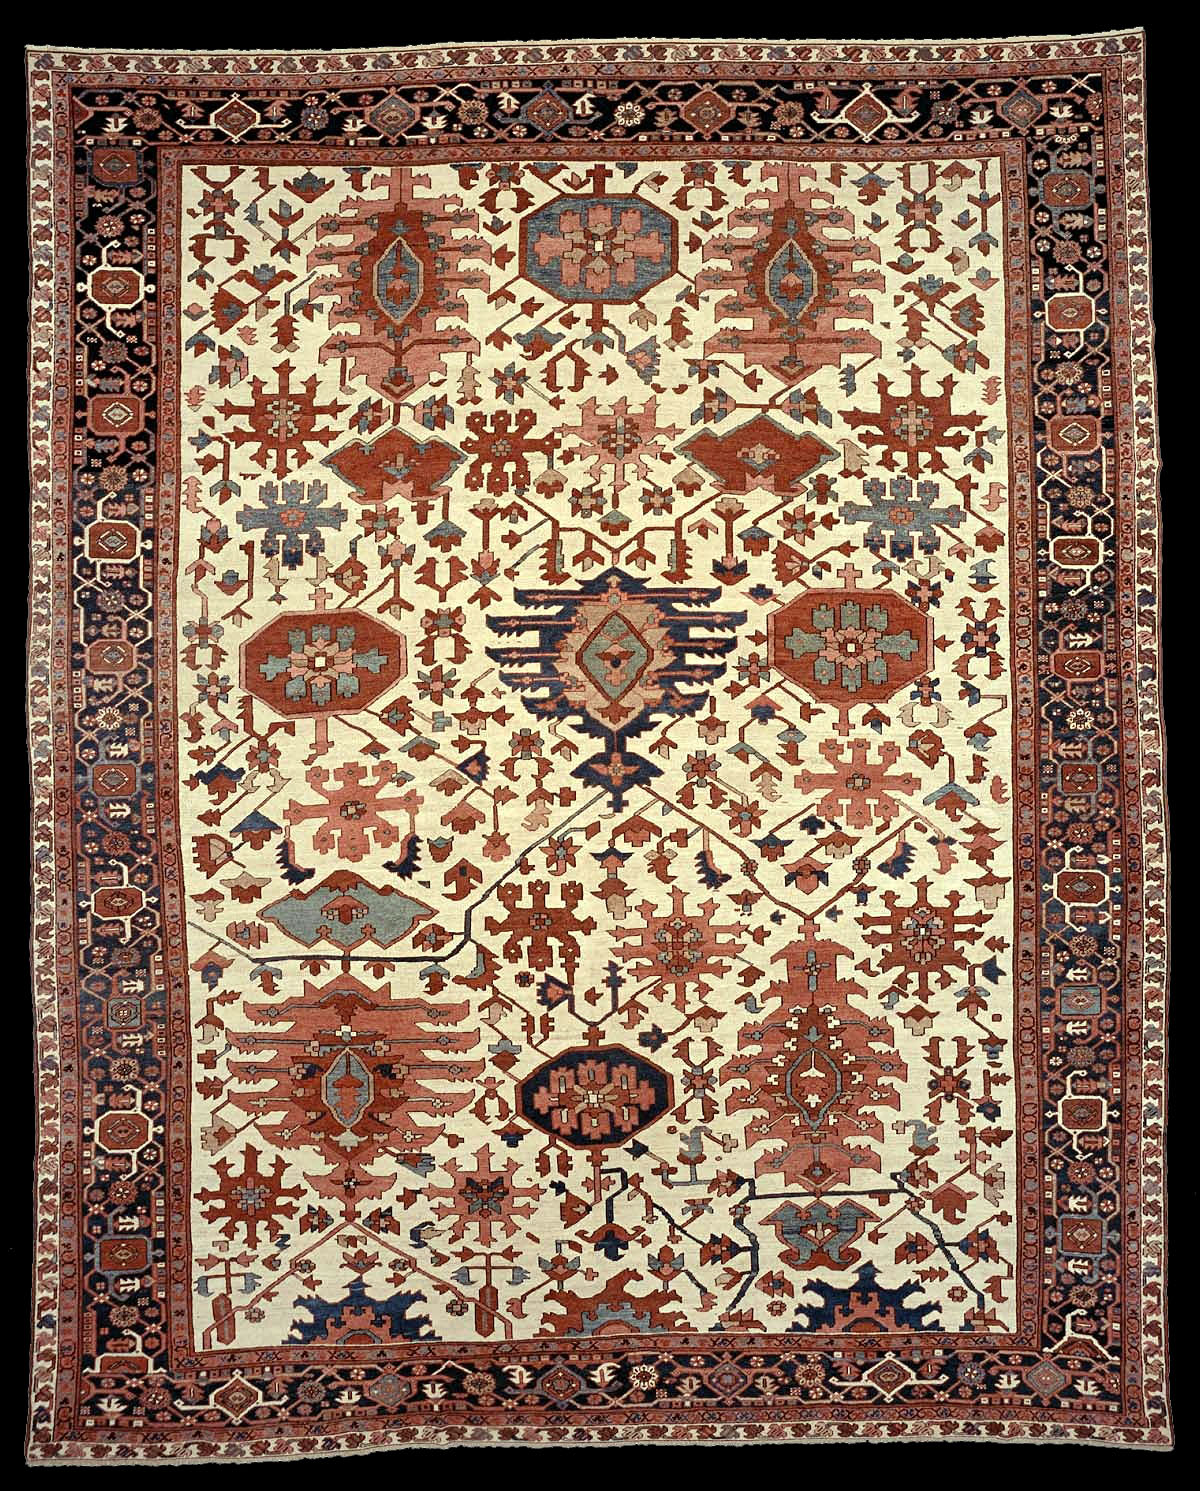 Antique Large Rug: Antique Serapi Carpet